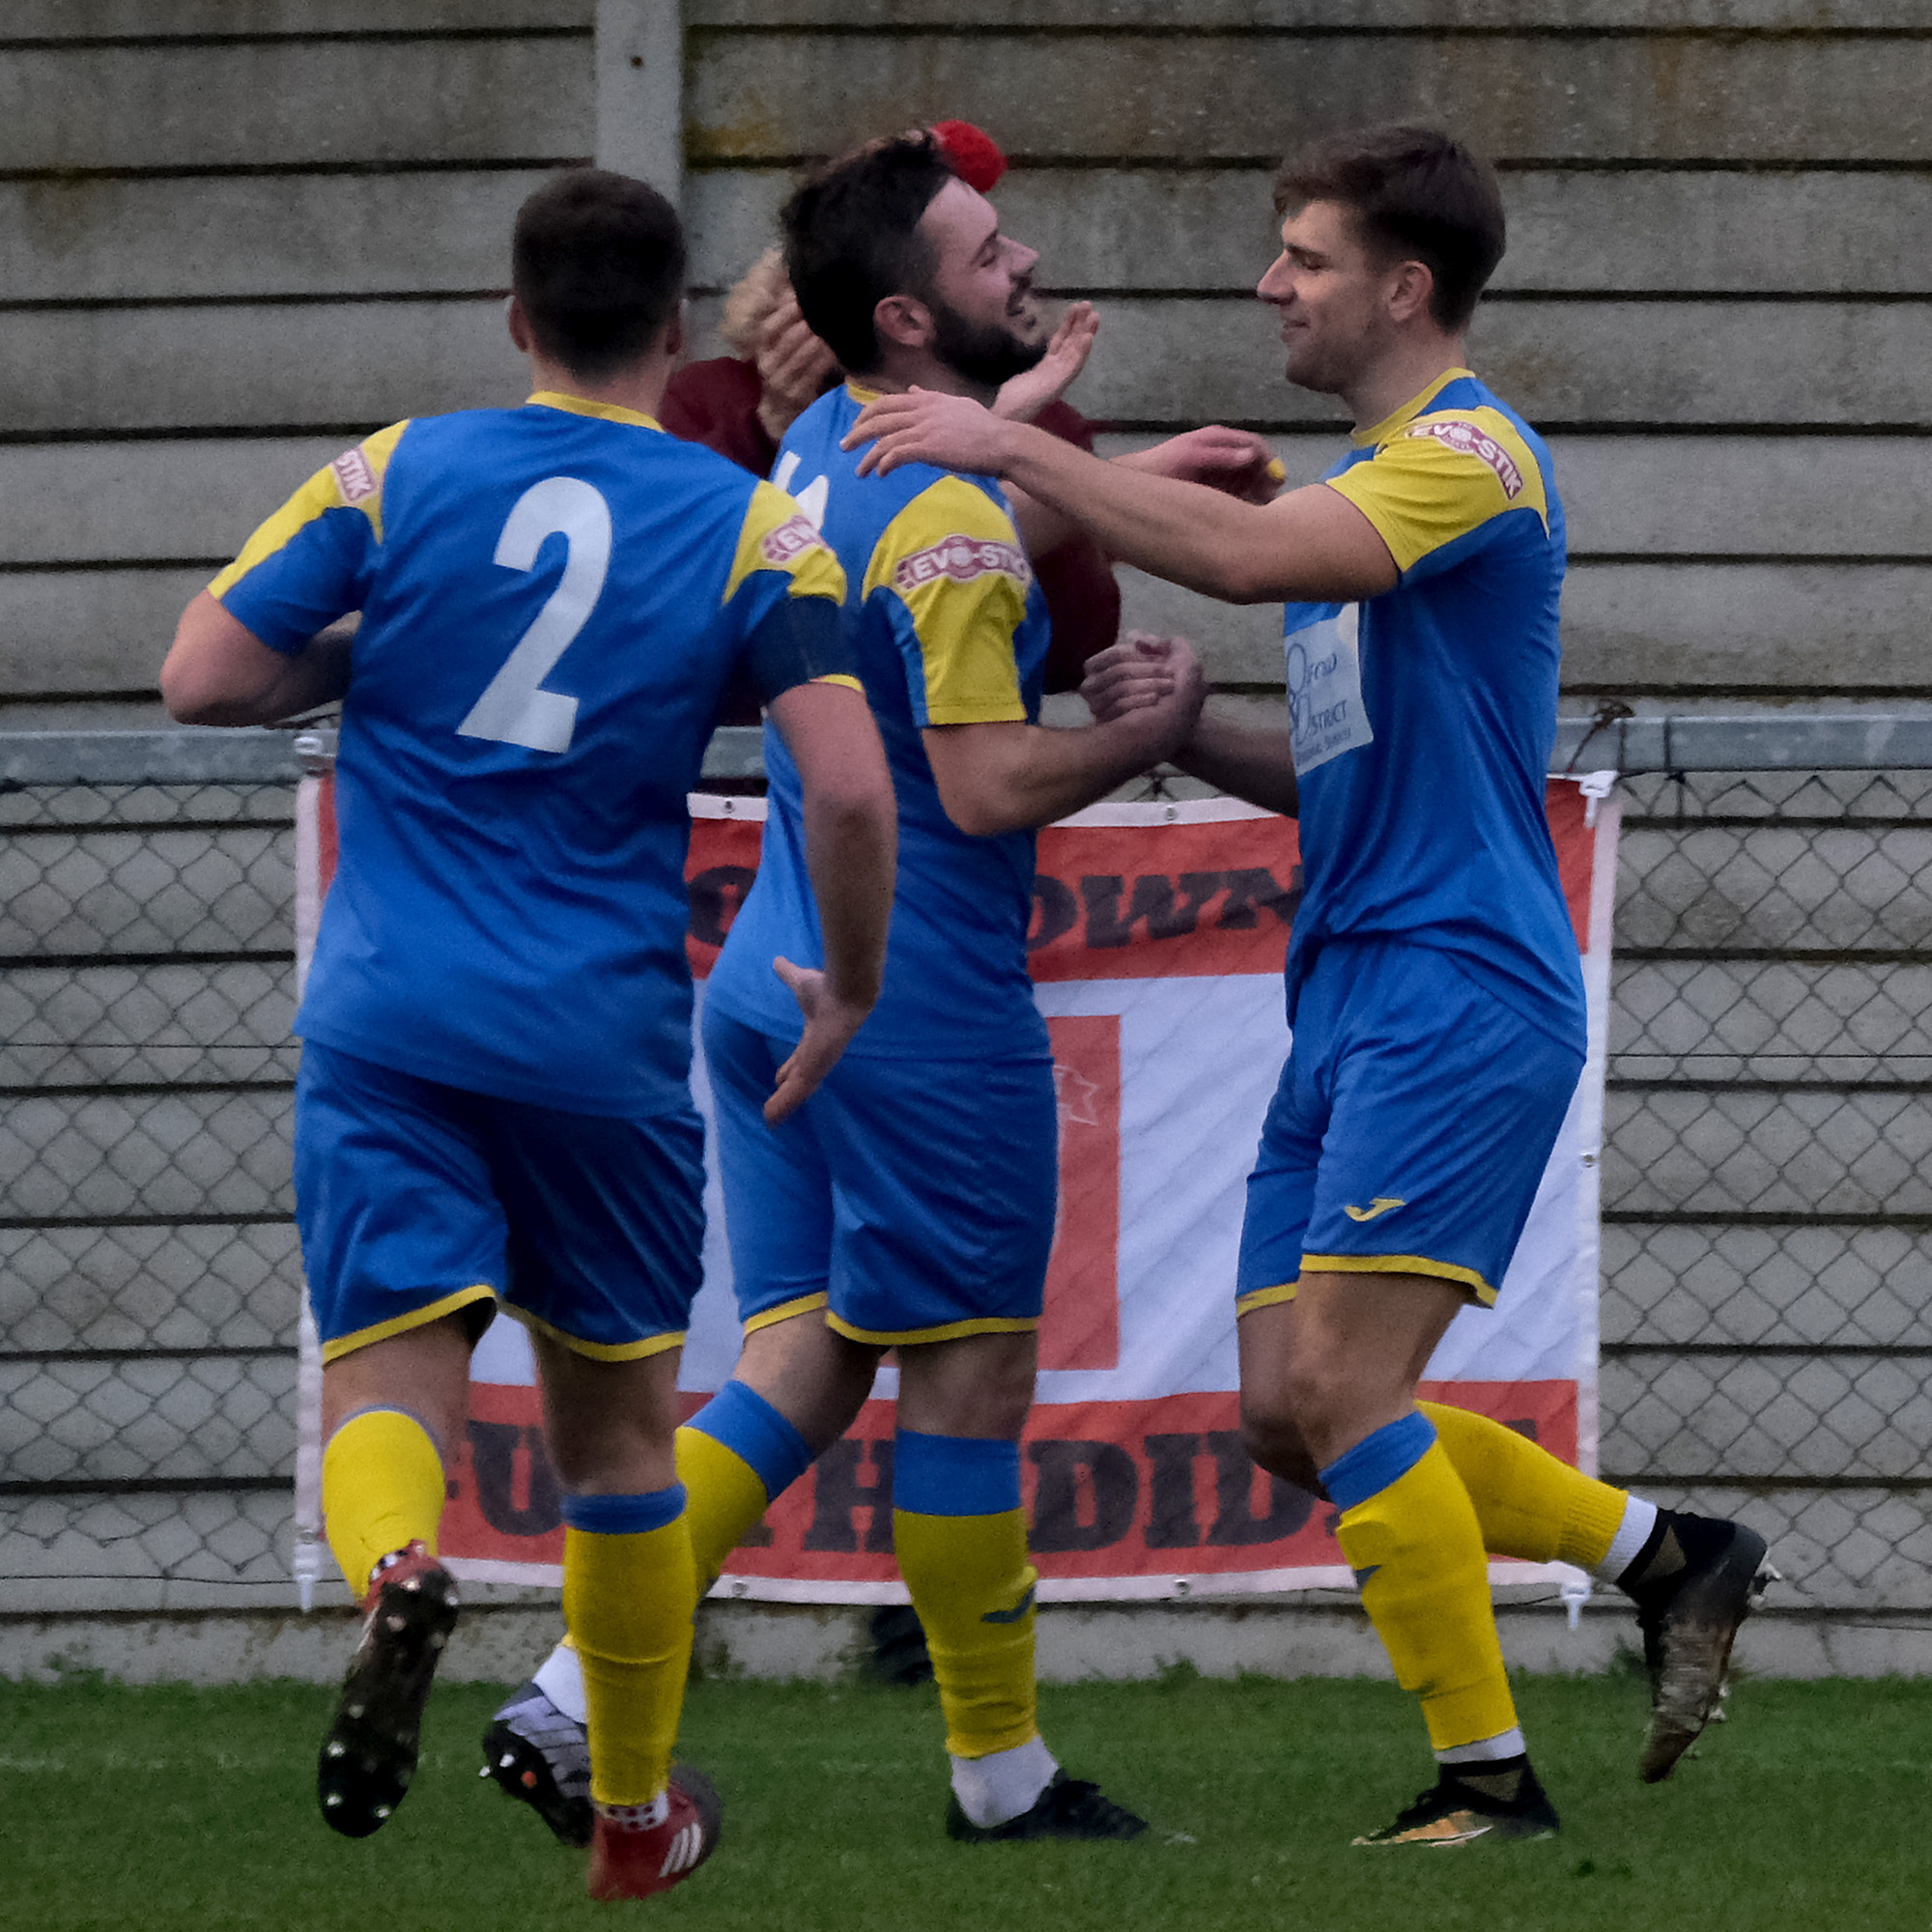 David Murphy is congratulated by Greg Hackett (right) after hitting what proved the winner in Didcot's 1-0 win over Thame. Below, Didcot's Luke Carnell wins this header at a cornerPictures: Ric Mellis